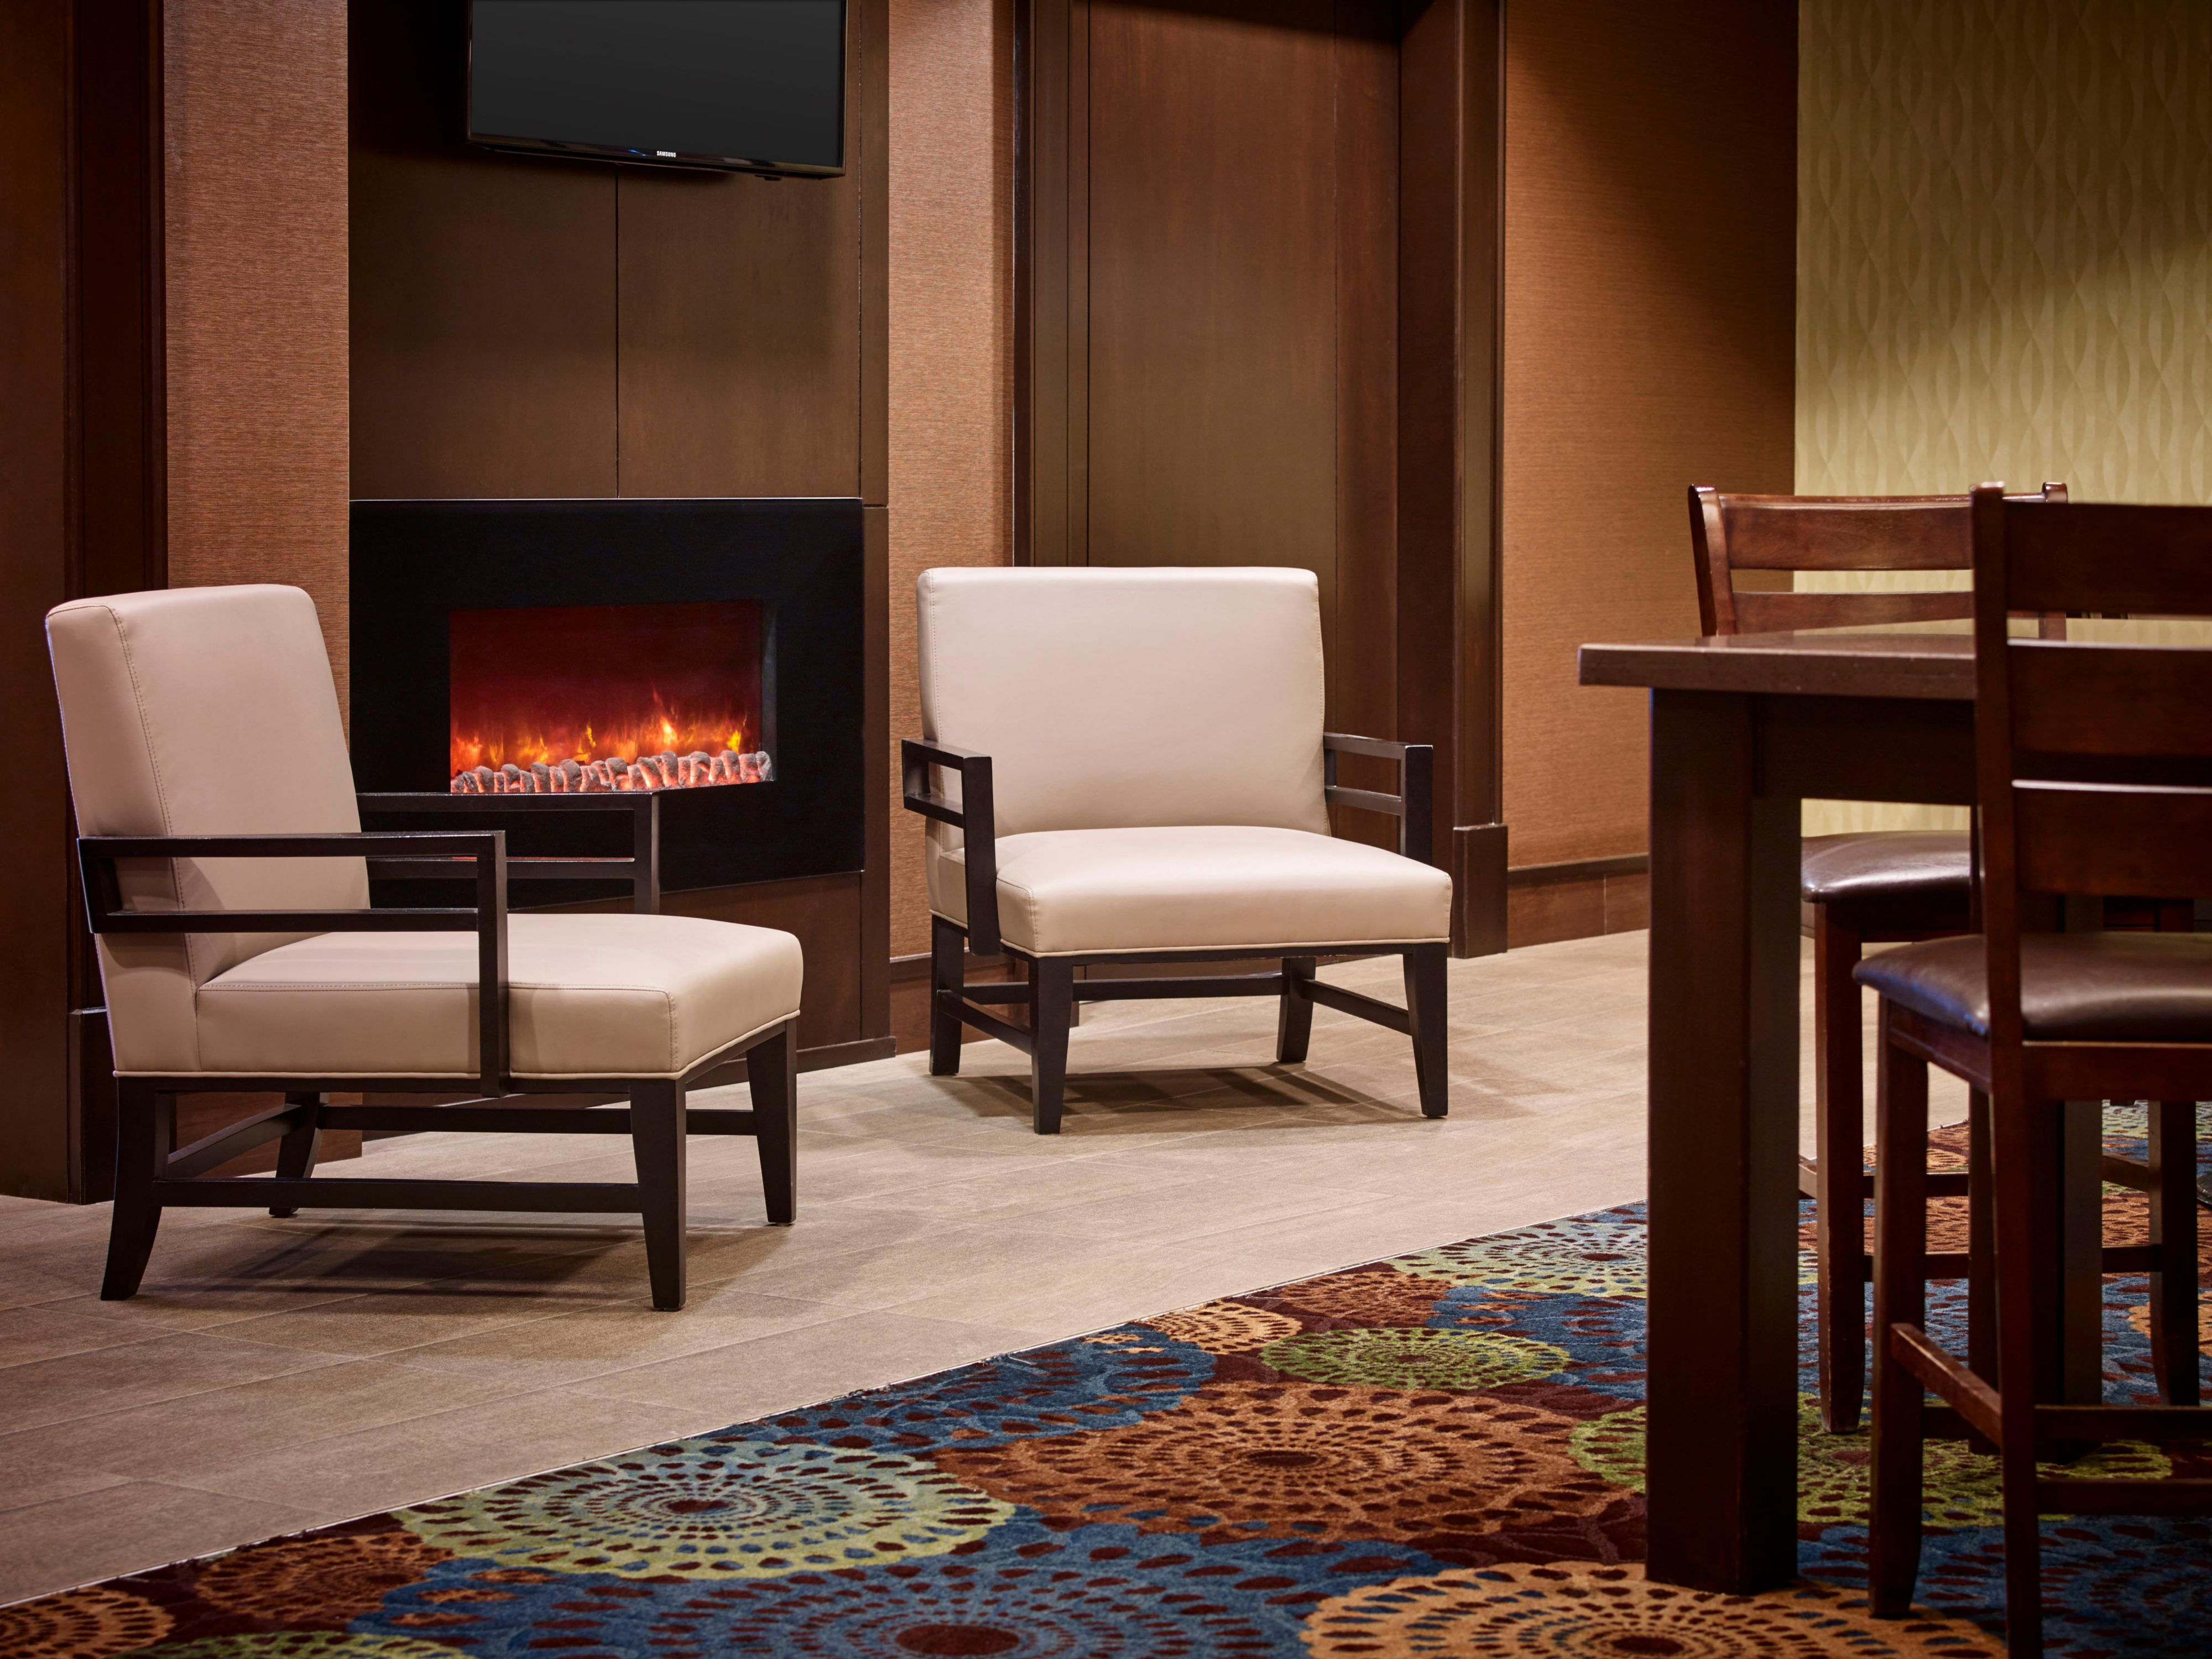 Cozy up next to our fireplace.